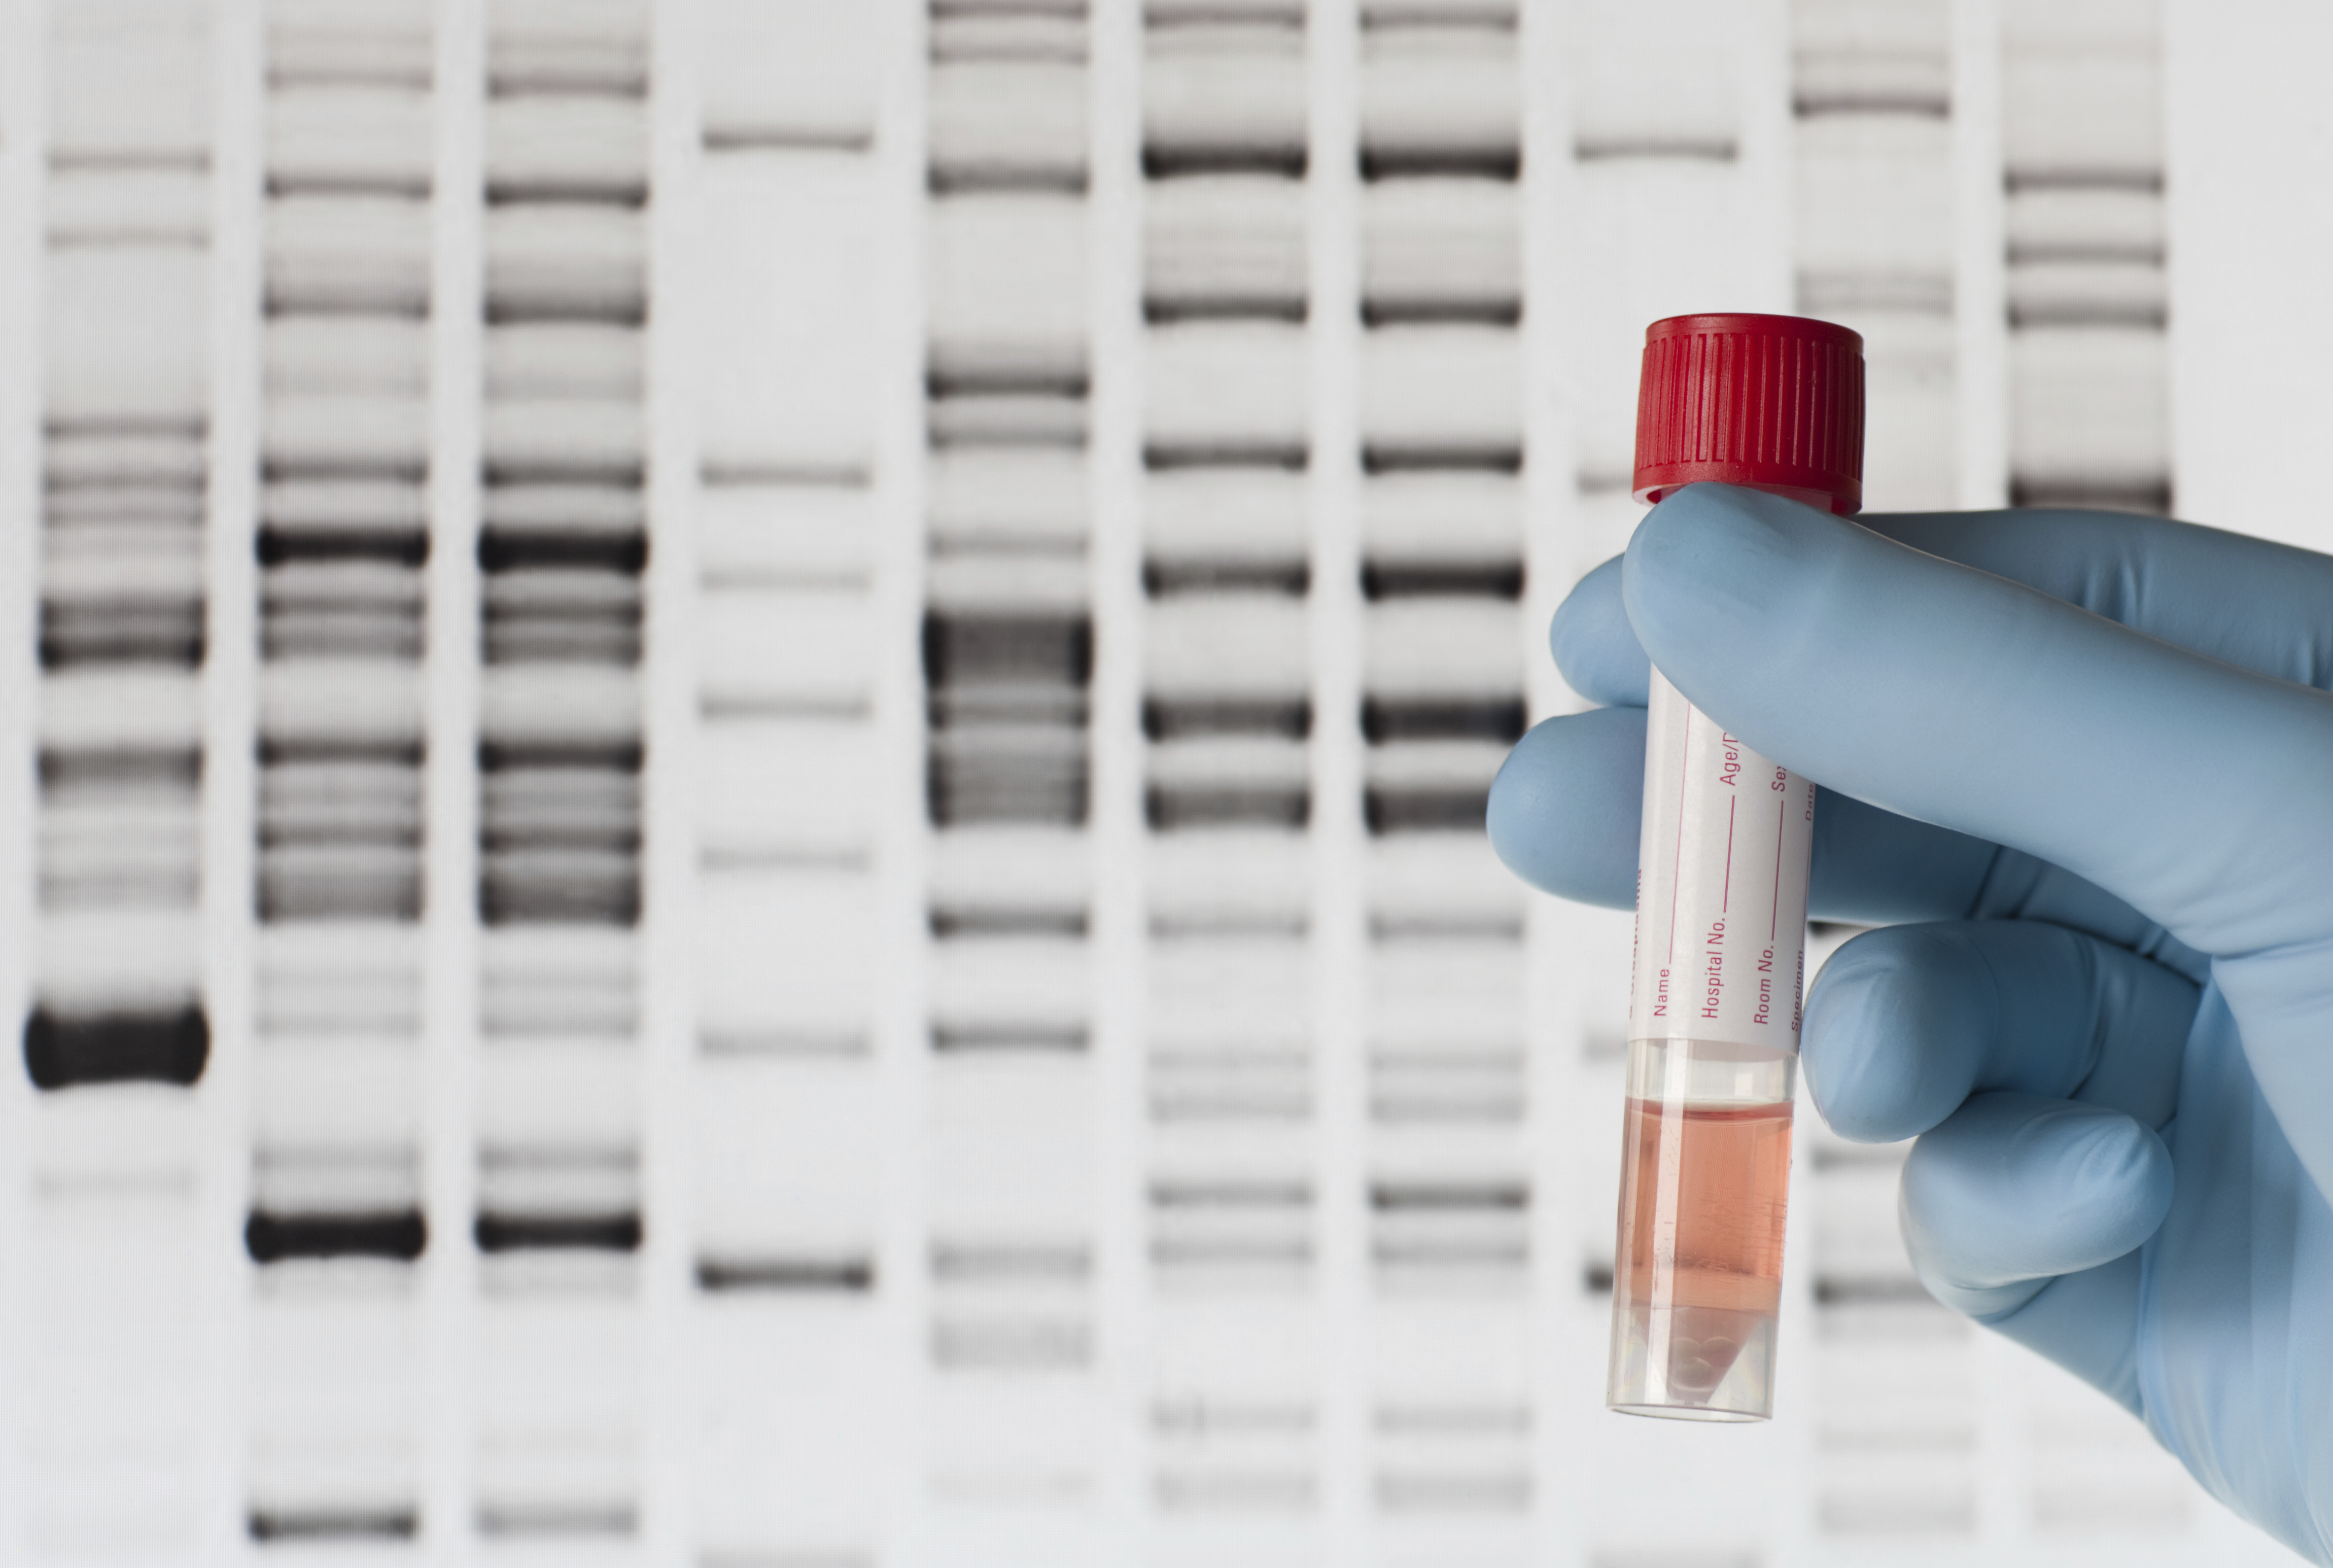 DNA Testing Firms Promise Not to Share Data Without User Consent